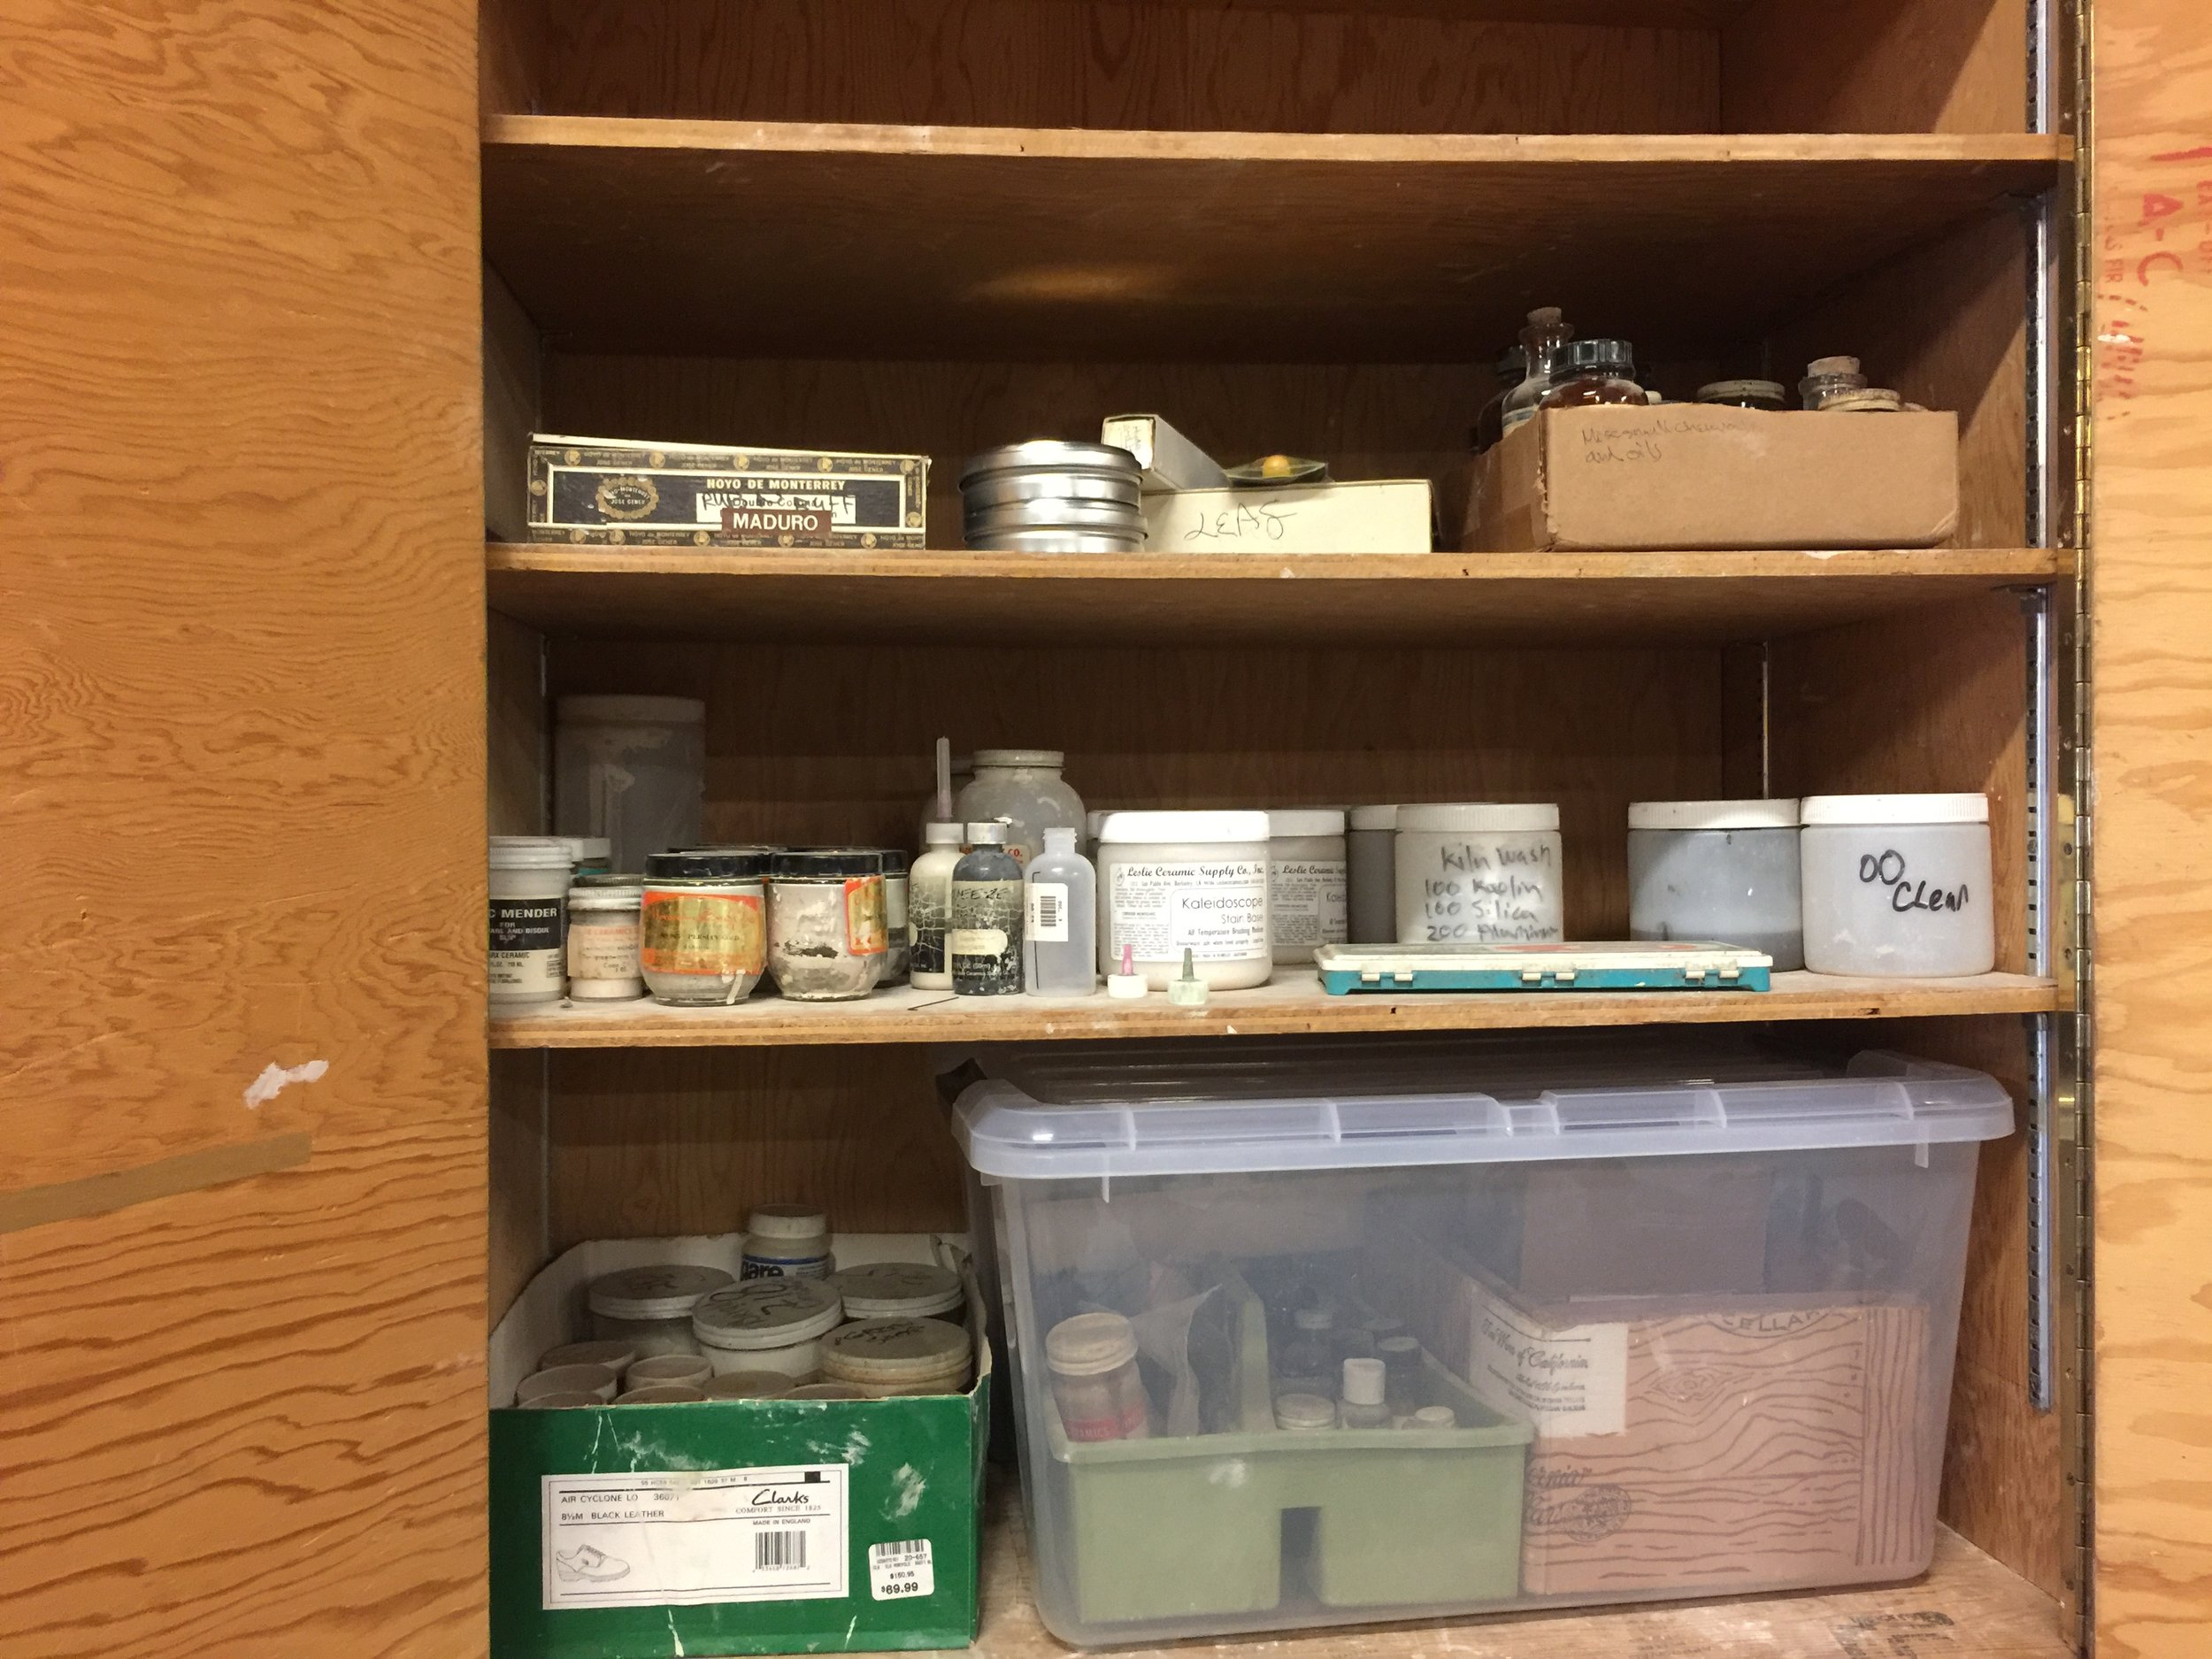 Copy of Spatial organization of art supplies